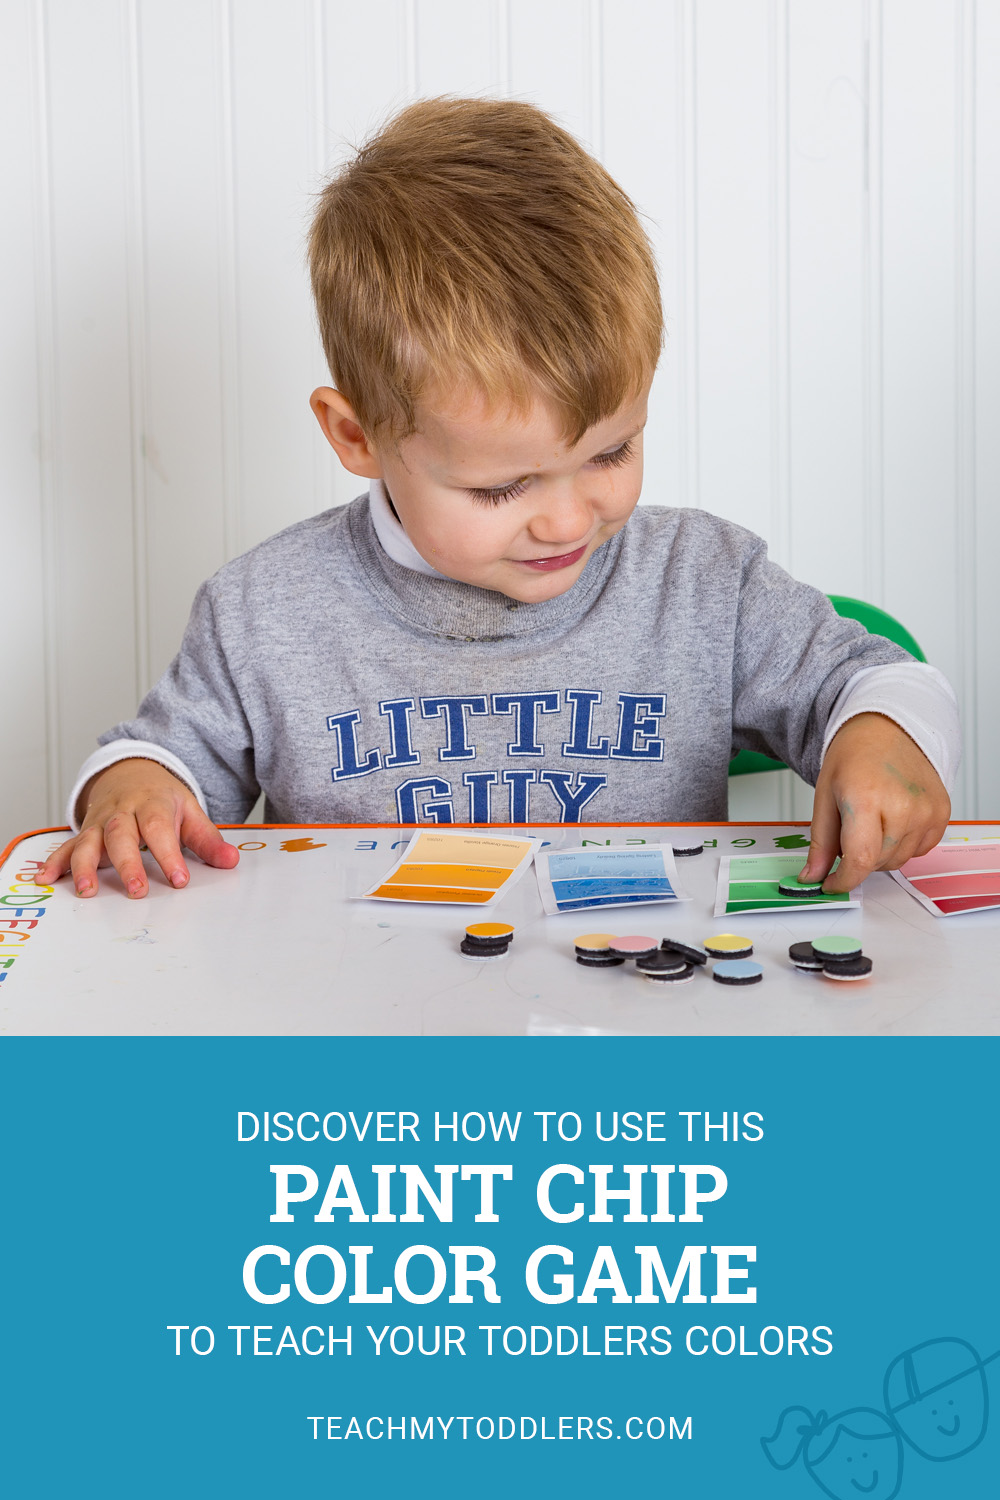 Discover how to use this paint chip color match game to teach your toddlers colors